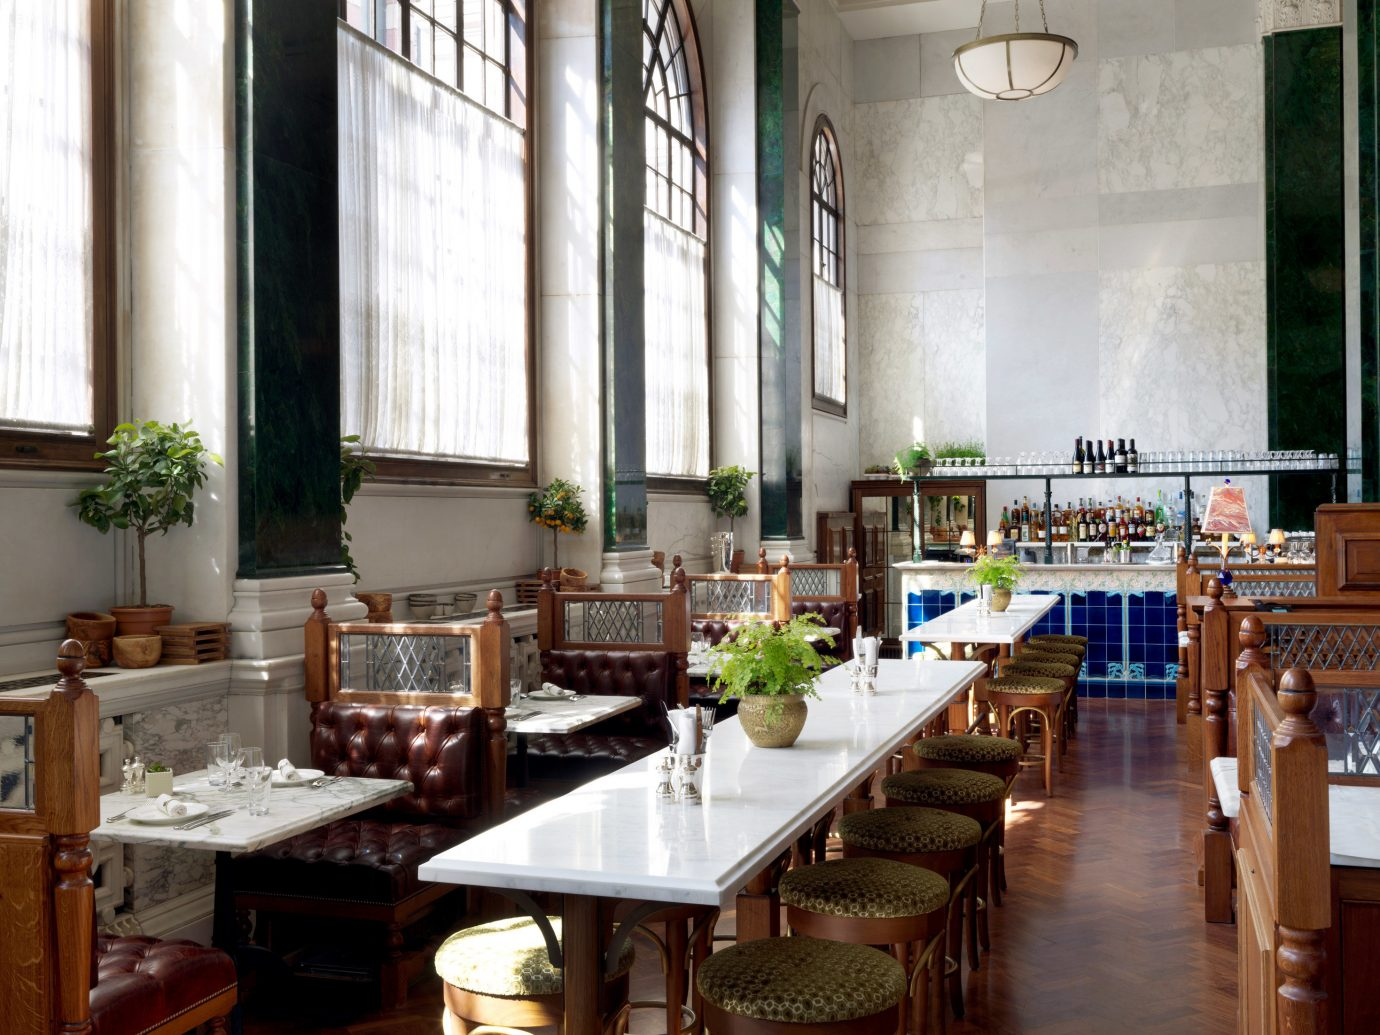 Restaurant at The Ned in London